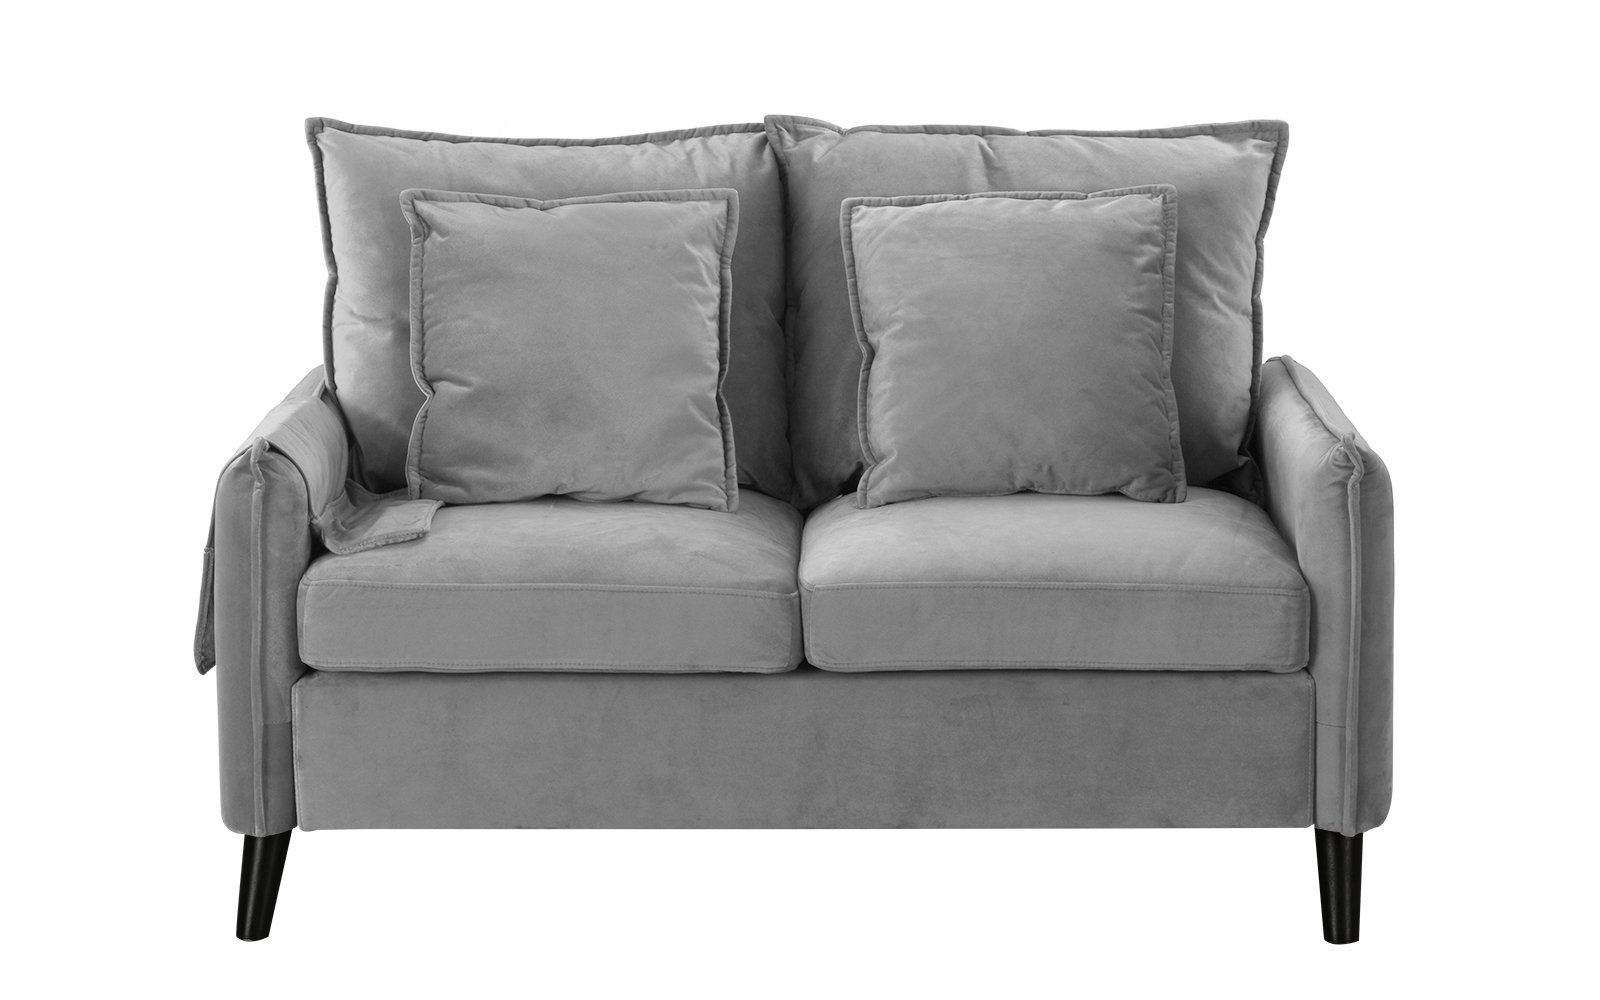 binx retro brush microfiber upholstered loveseat products rh pinterest com